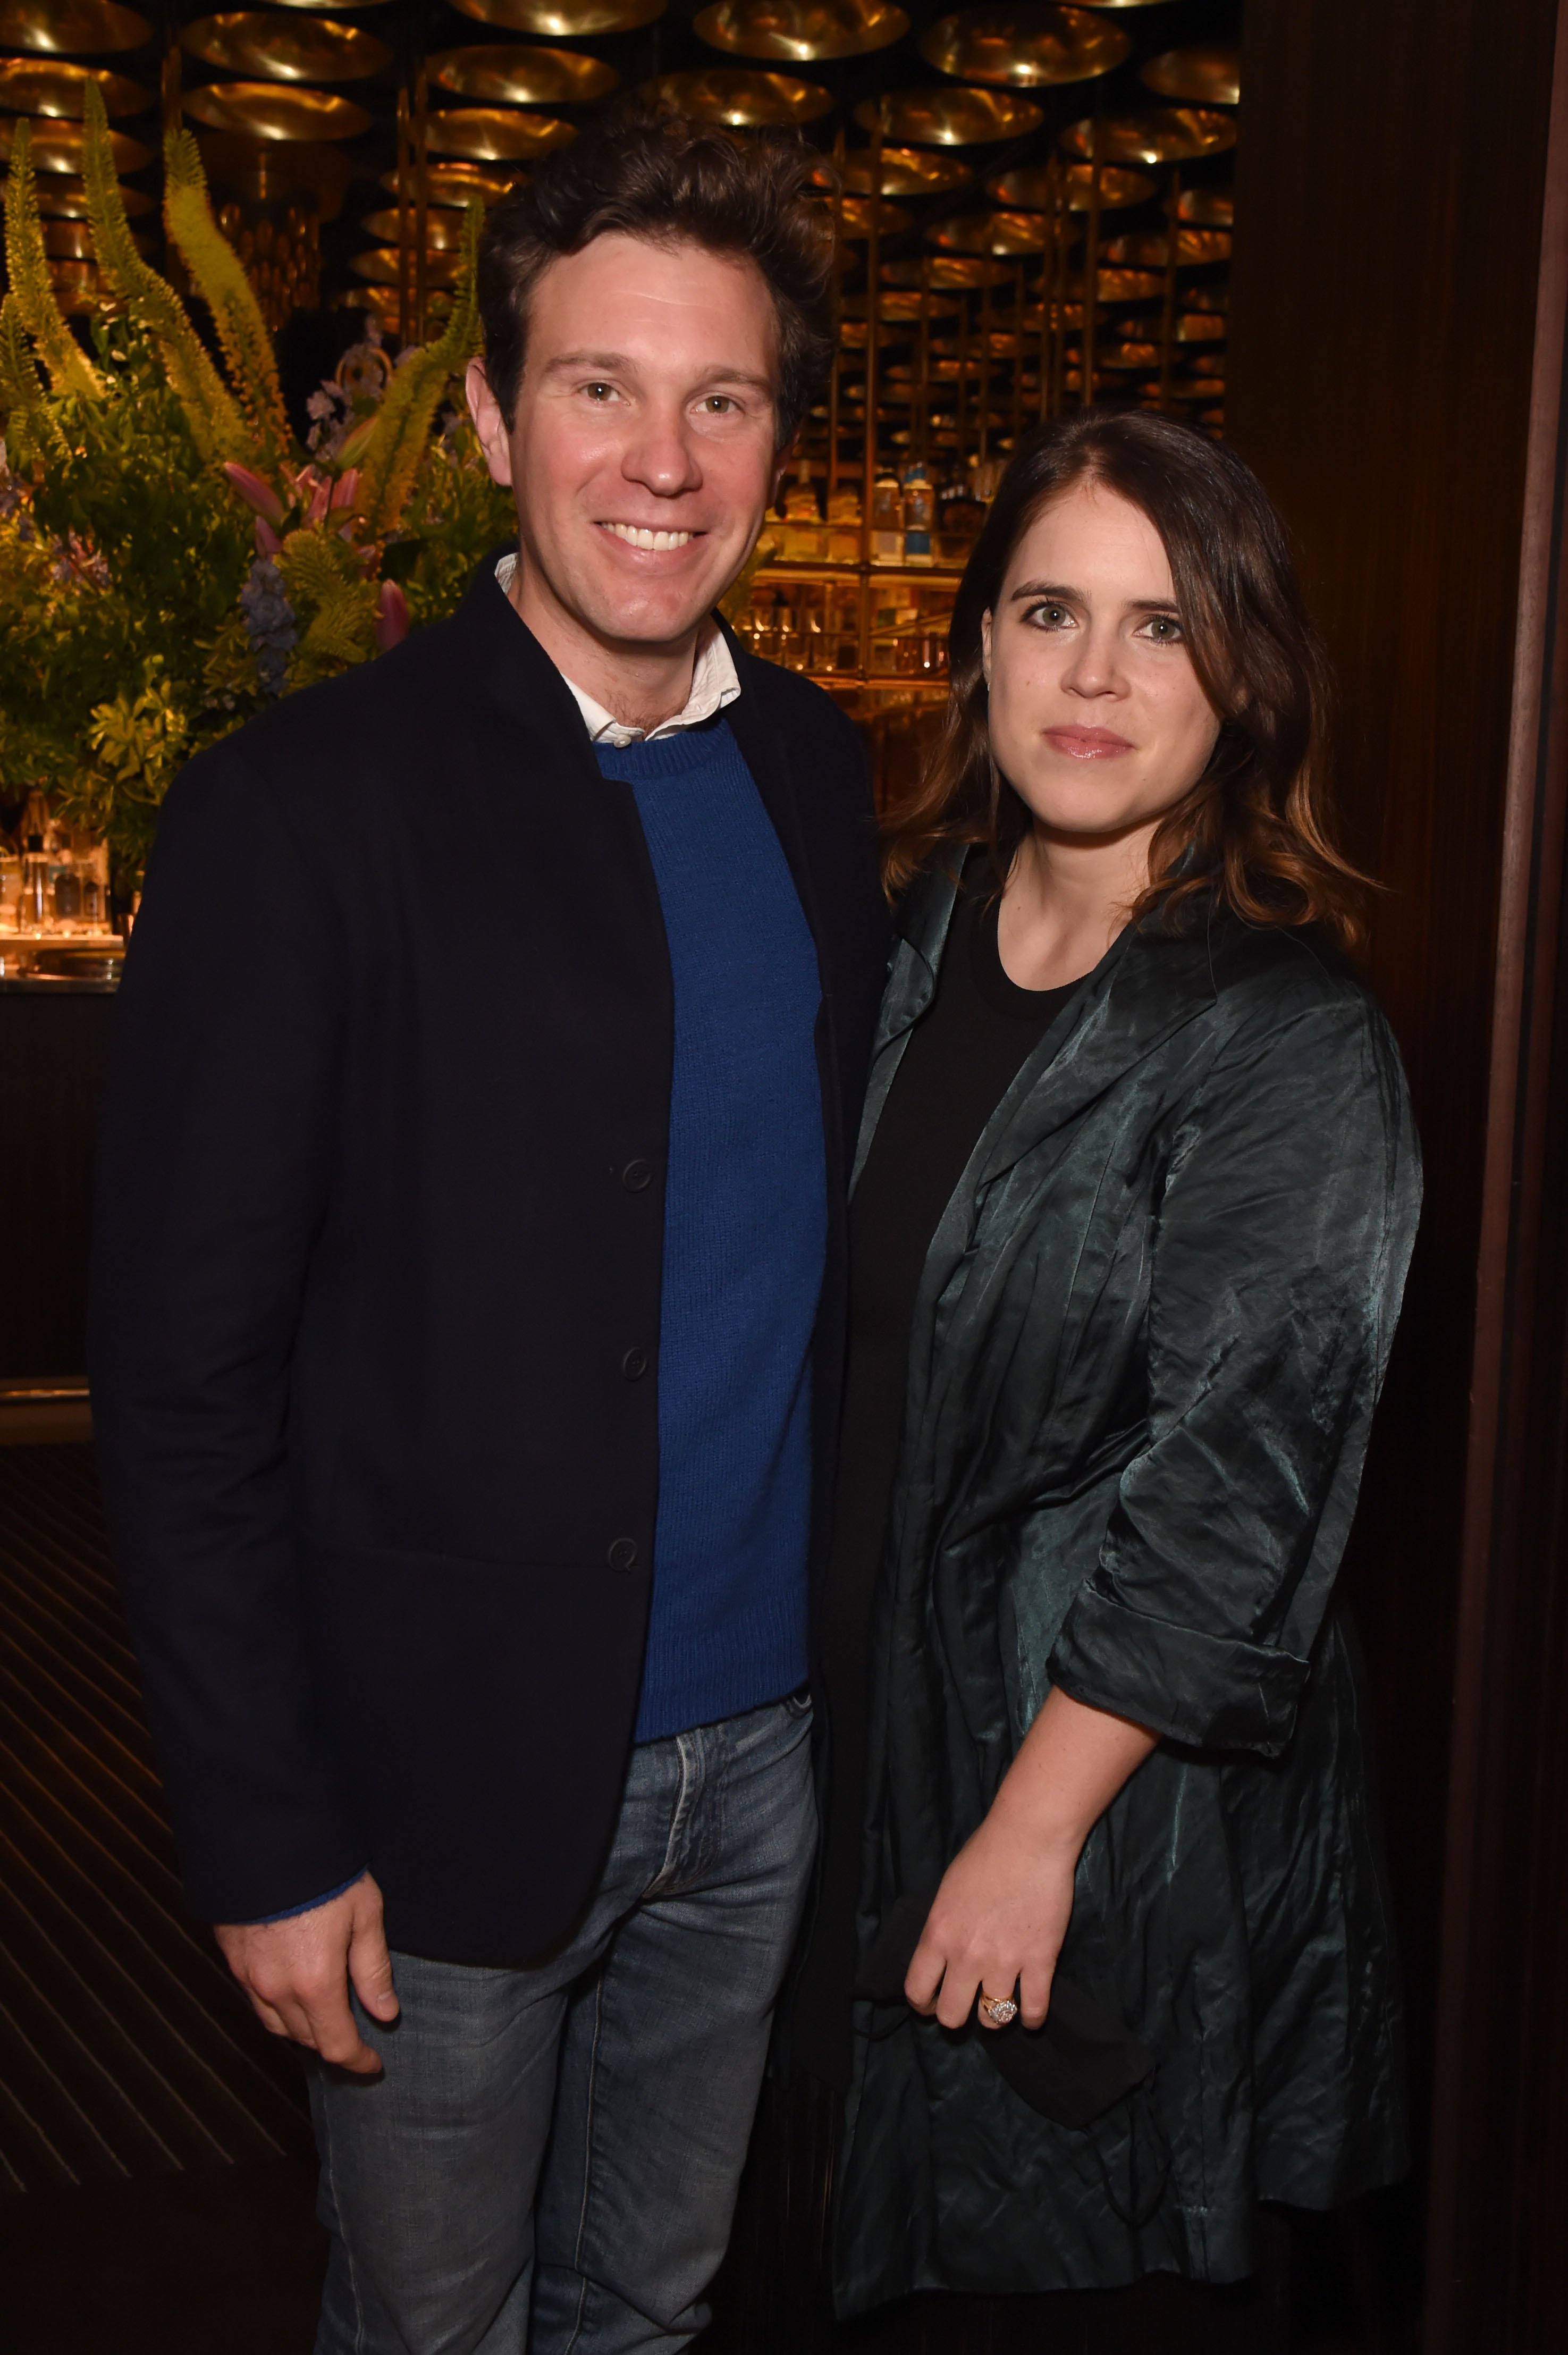 """Jack Brooksbank and Princess Eugenie attend an exclusive dinner hosted by Poppy Jamie to celebrate the launch of her first book """"Happy Not Perfect"""" at Isabel on June 22, 2021 in London, England 